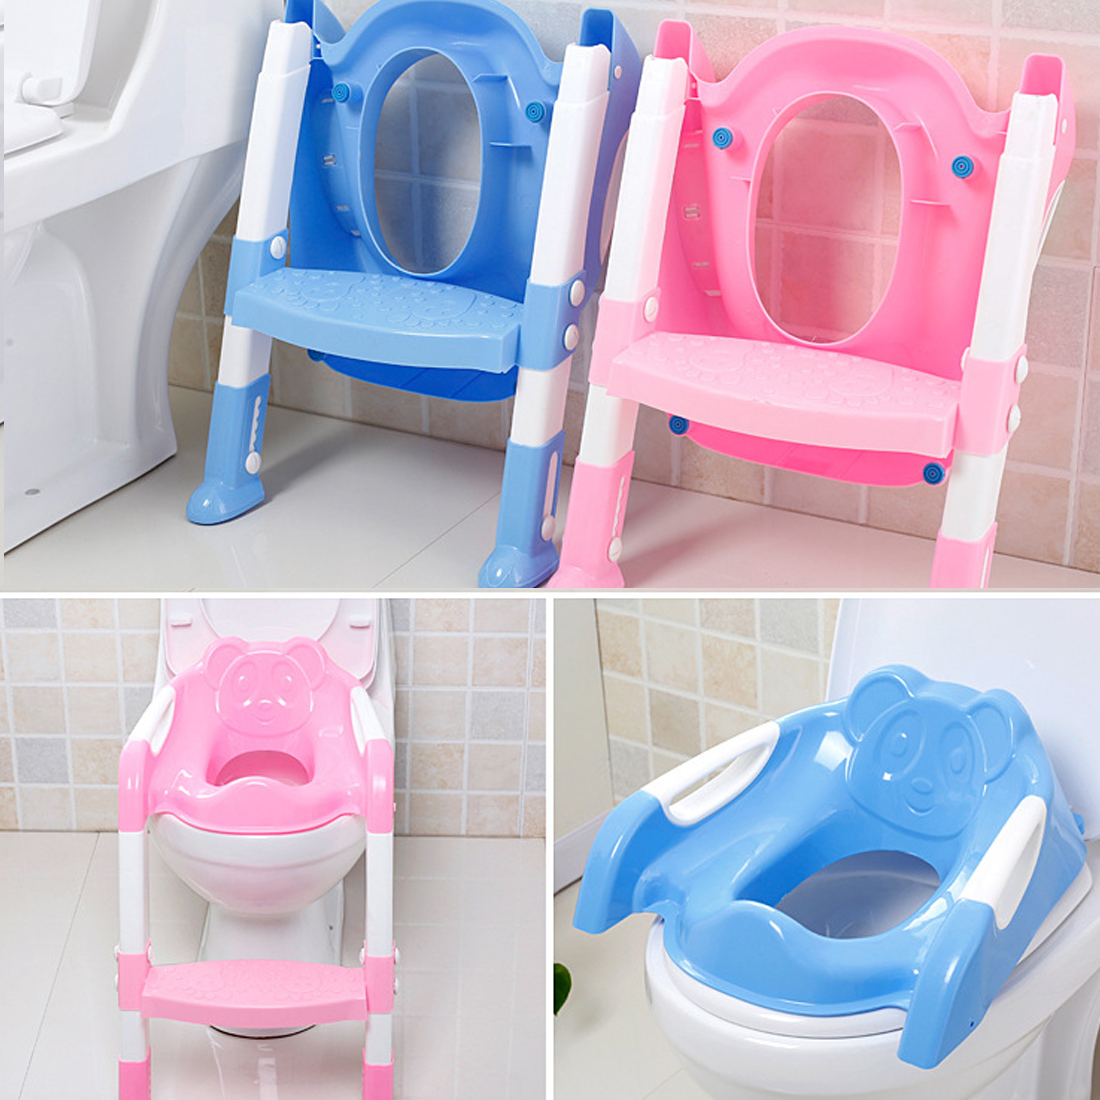 Toilet Ring Kid Urinal Comfortable Assistant Toilet   Multifunctional Potty Baby Travel Potty Training Seat PortableToilet Ring Kid Urinal Comfortable Assistant Toilet   Multifunctional Potty Baby Travel Potty Training Seat Portable